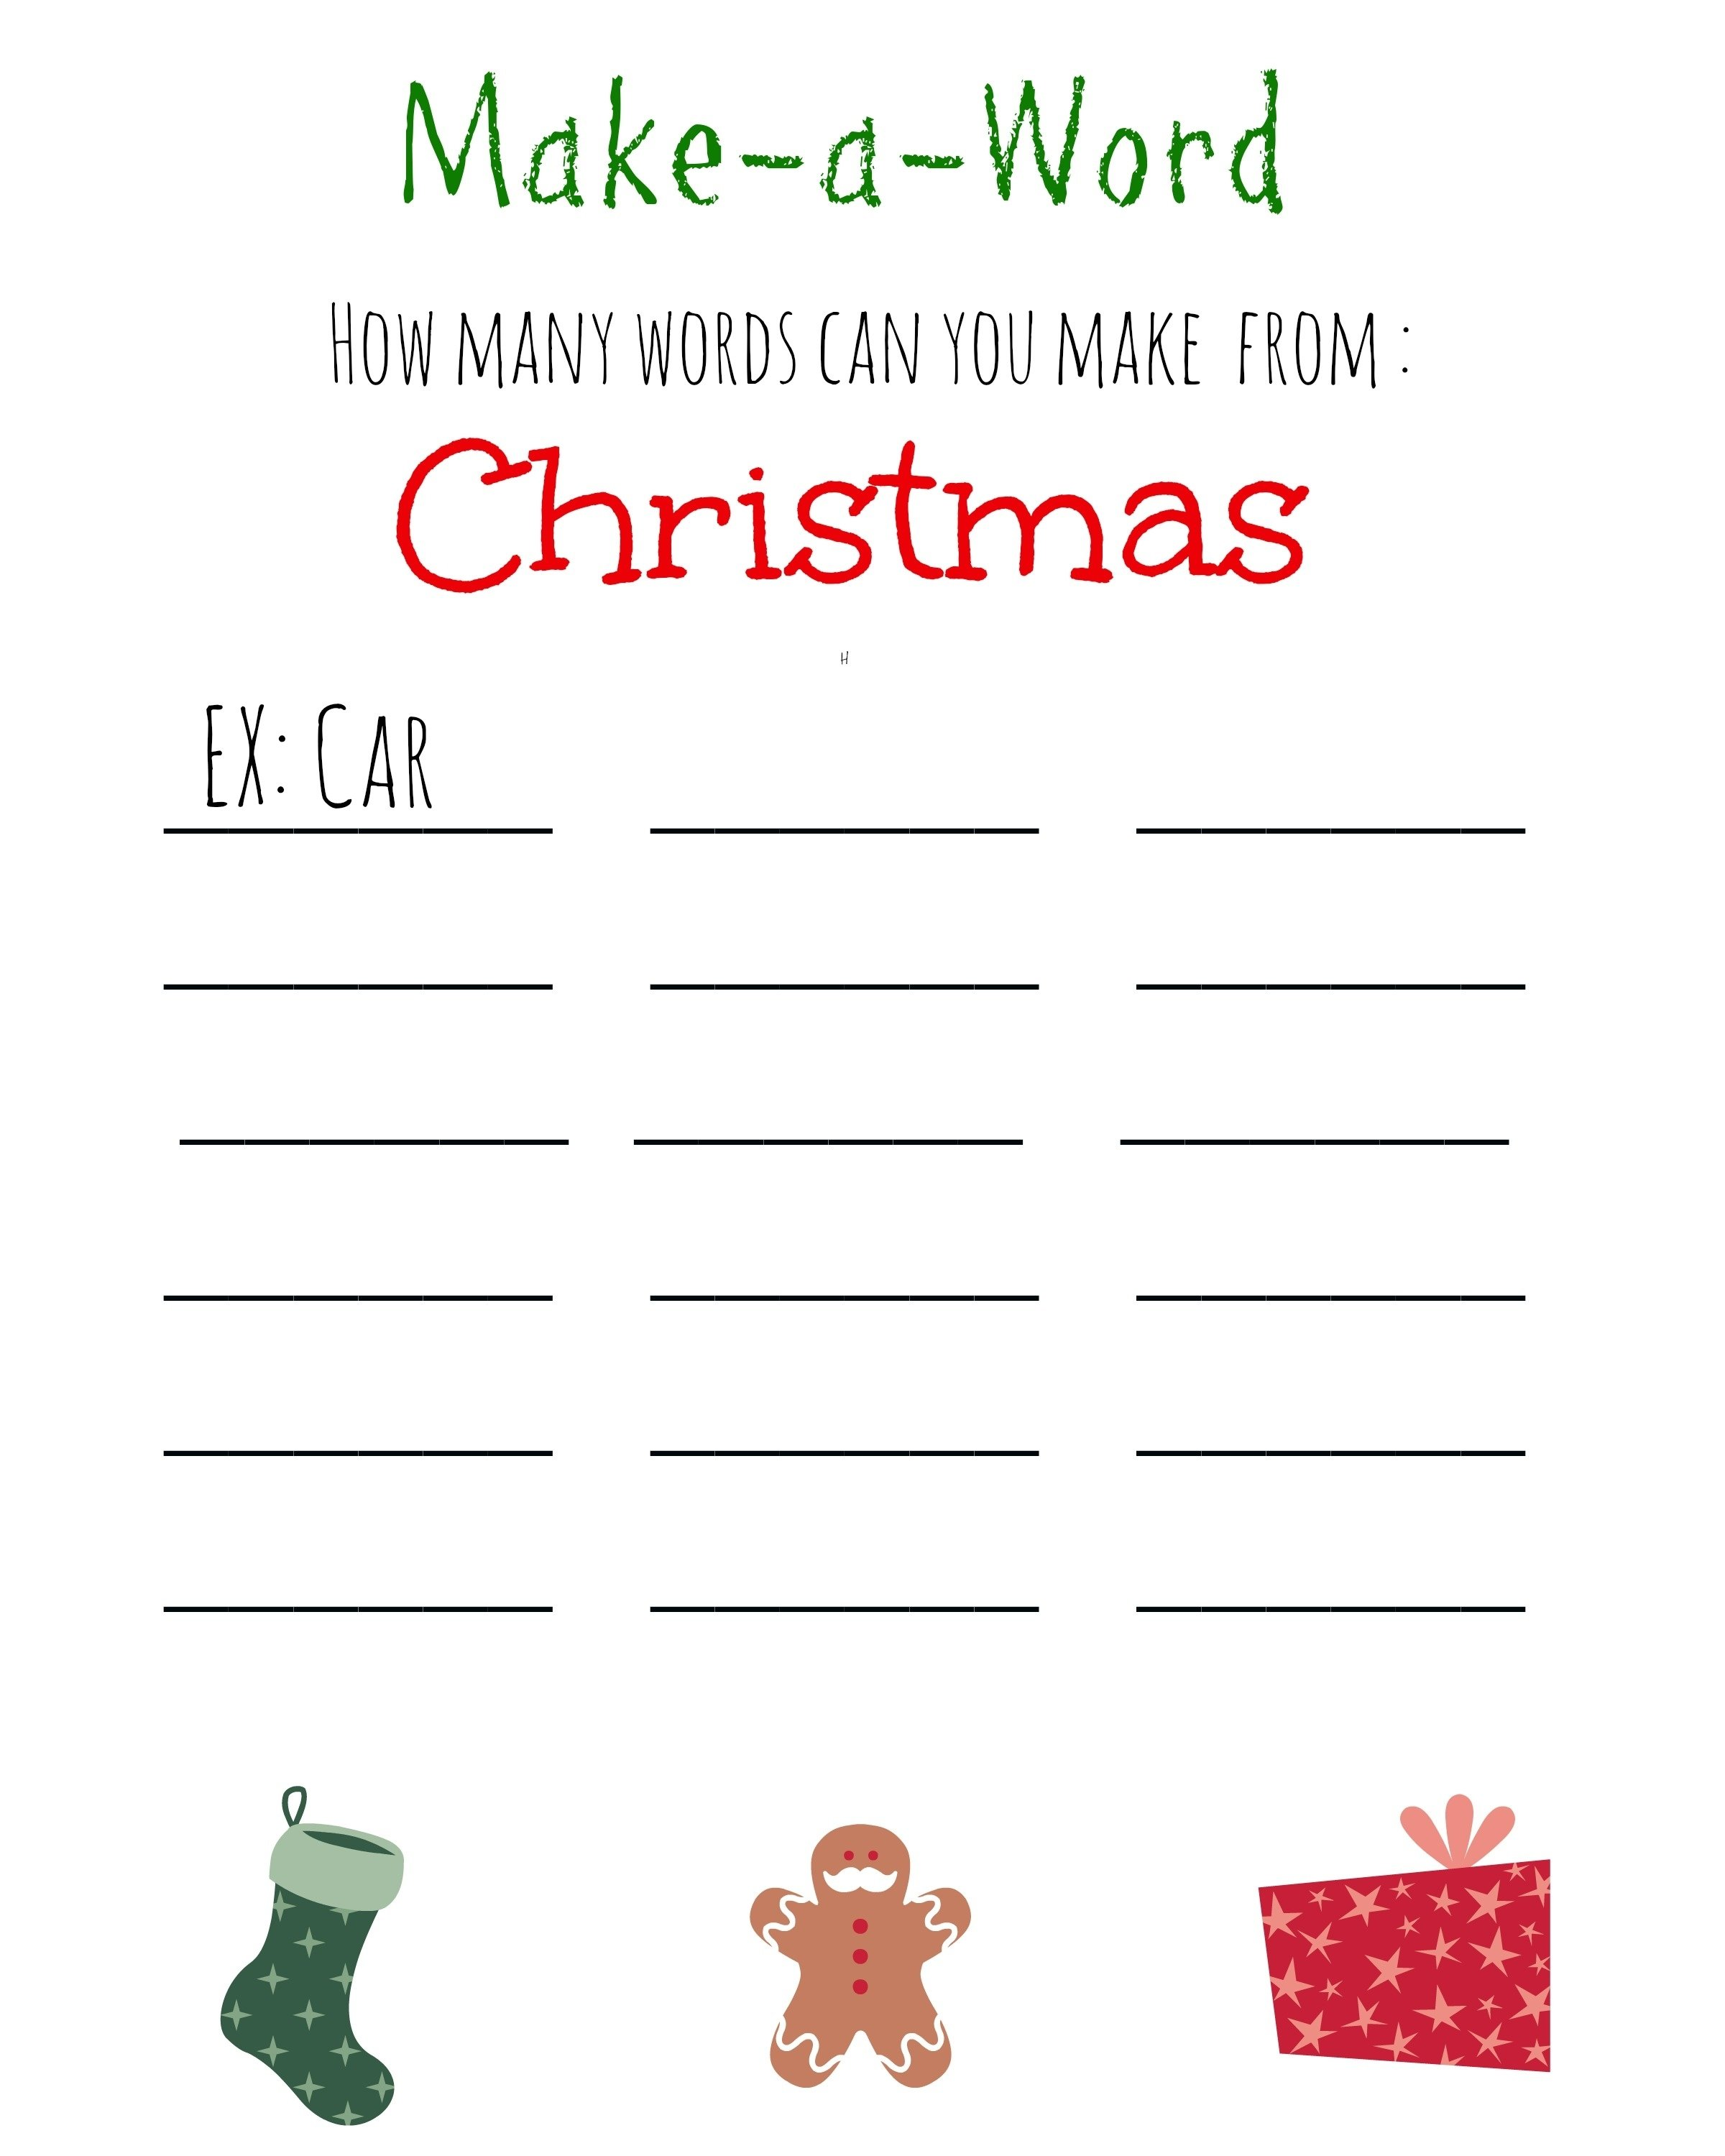 10 Unique Christmas Game Ideas For Kids christmas games for kids free printable christmas make a word 1